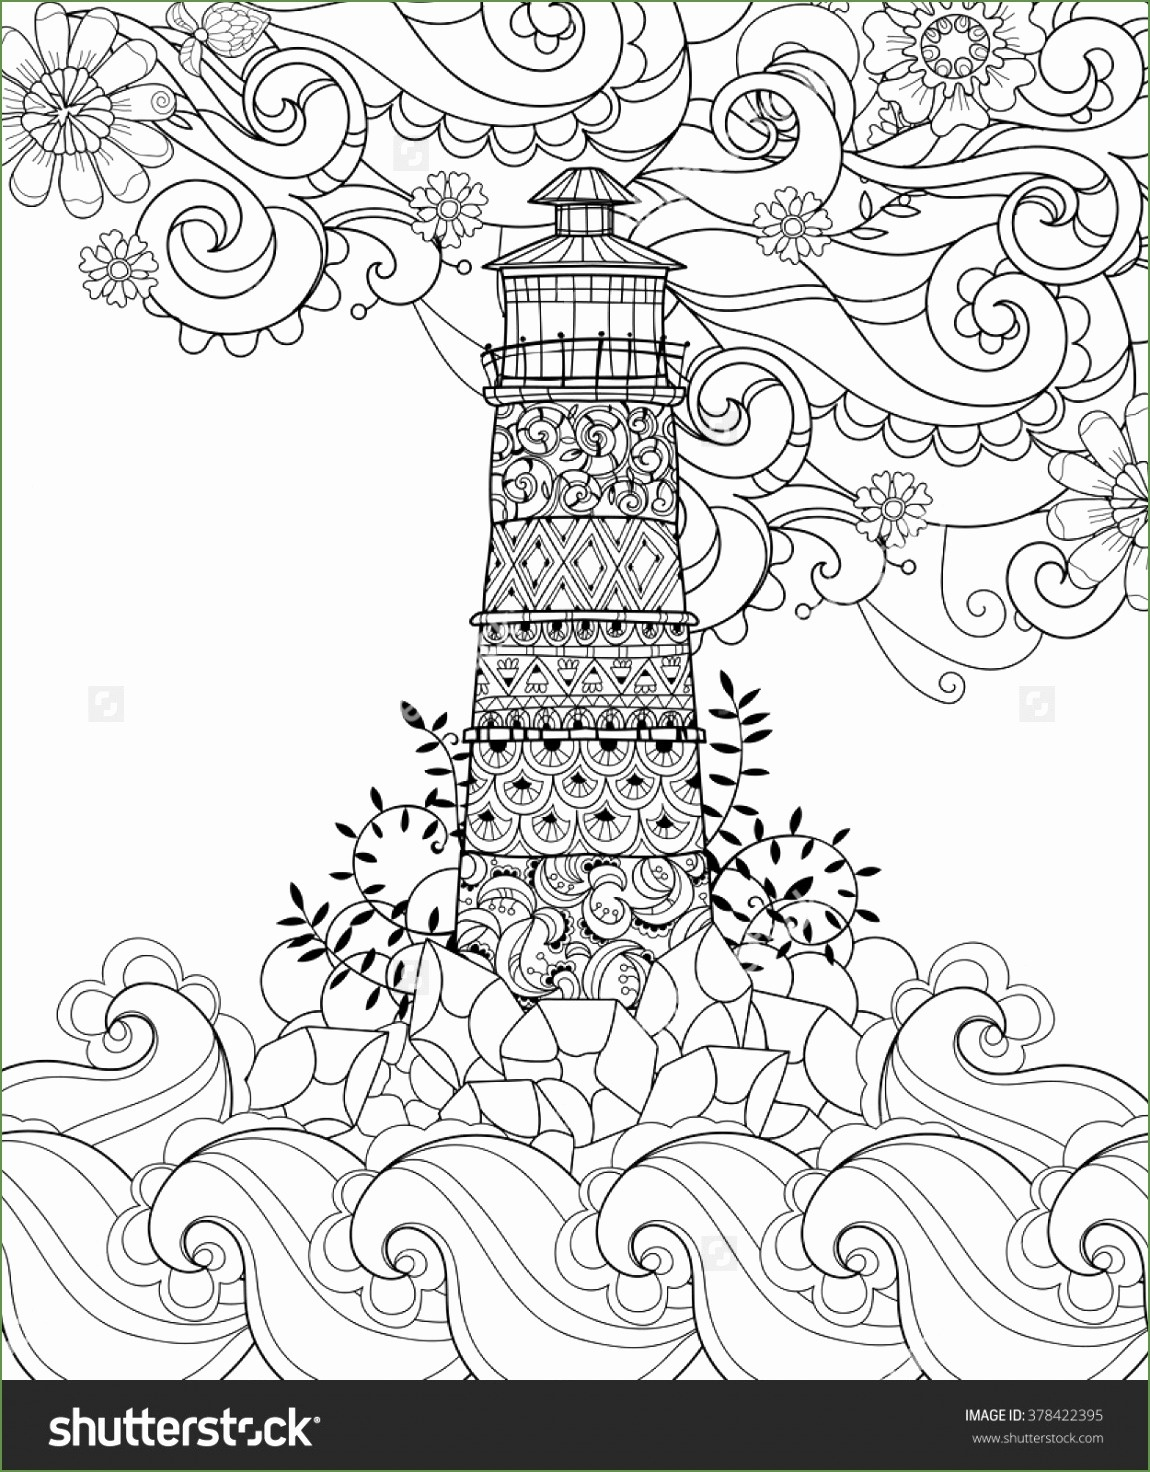 5 Zentangle Printables 51104 | Kayra Examples - Free Printable Zentangle Templates